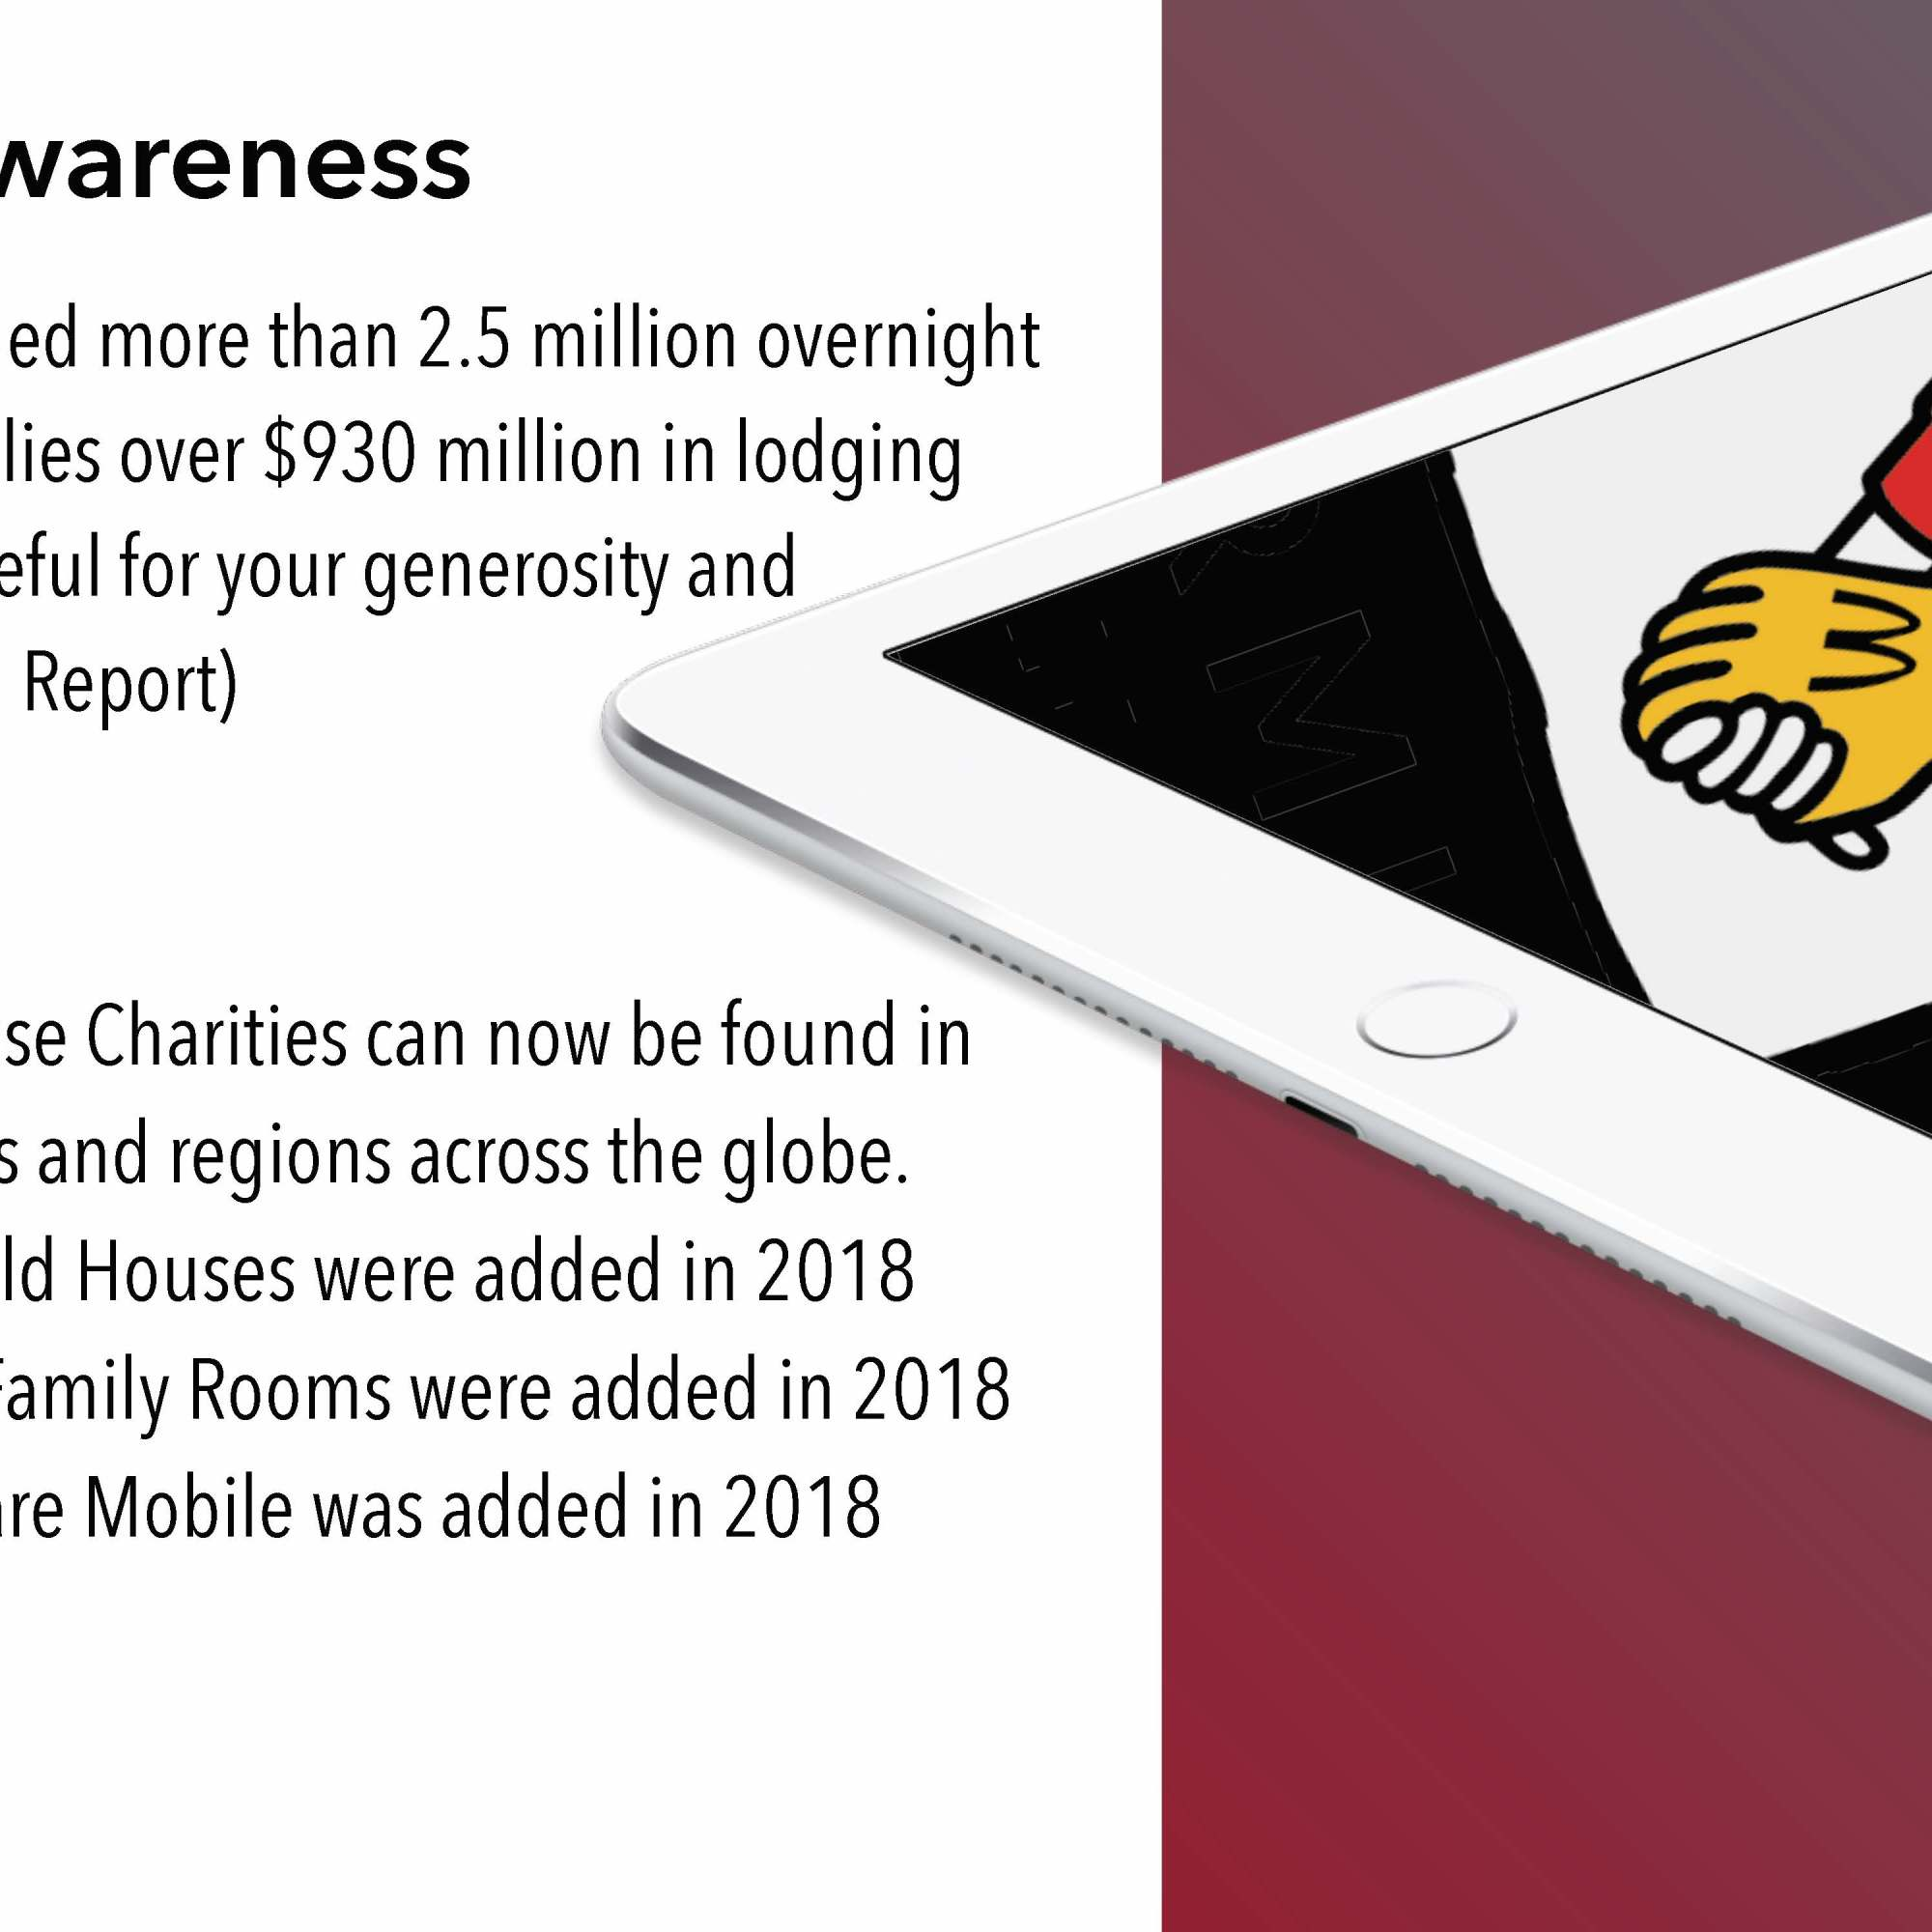 Ronald McDonald House Charities Inc. Campaign Proposal Awareness